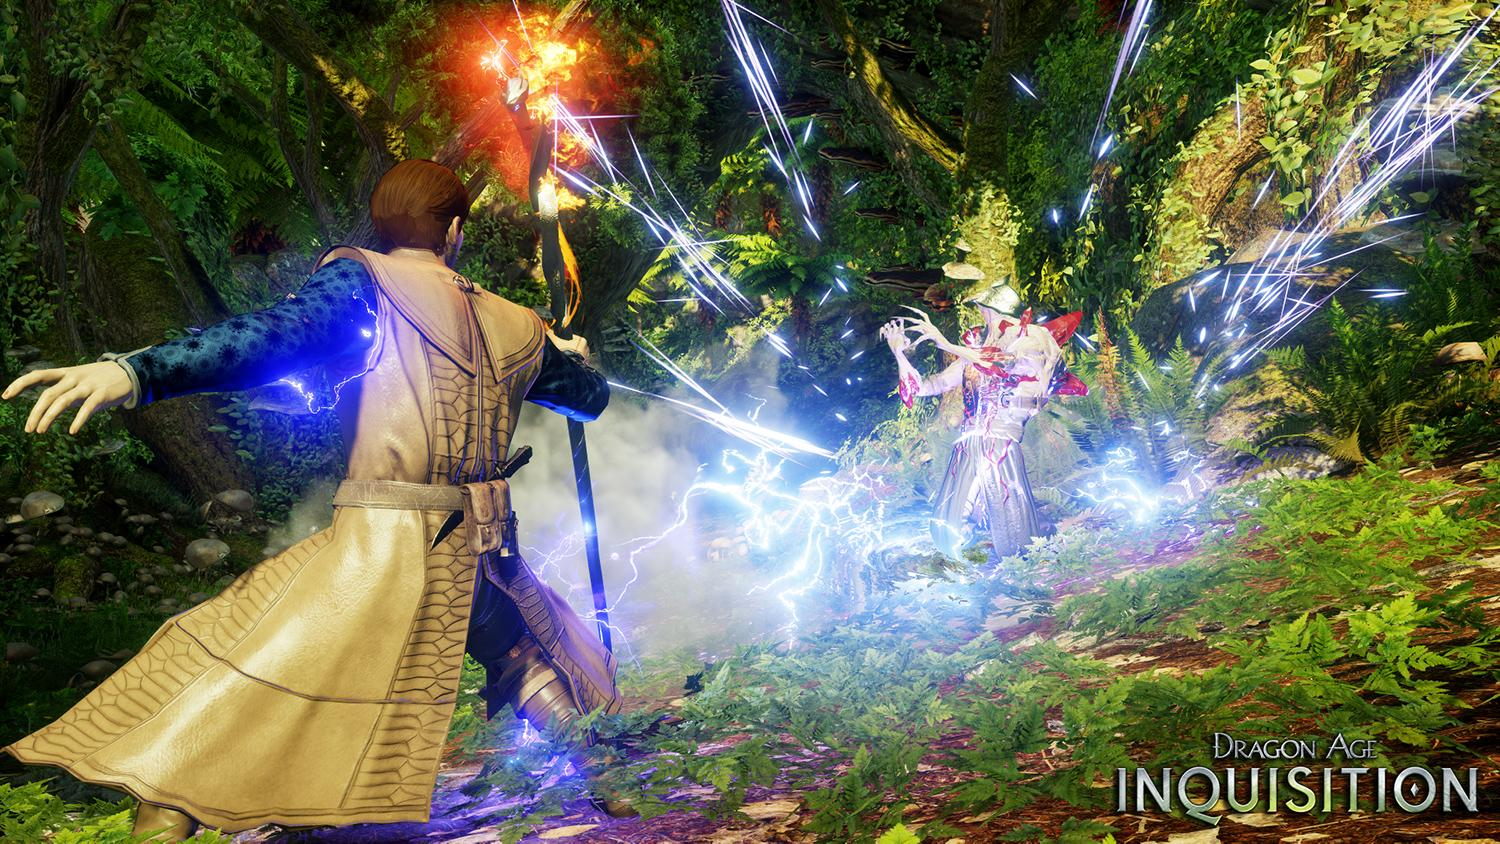 Dragon Age Inquisition Screenshots Gameplay Dragon-age-inquisition-review